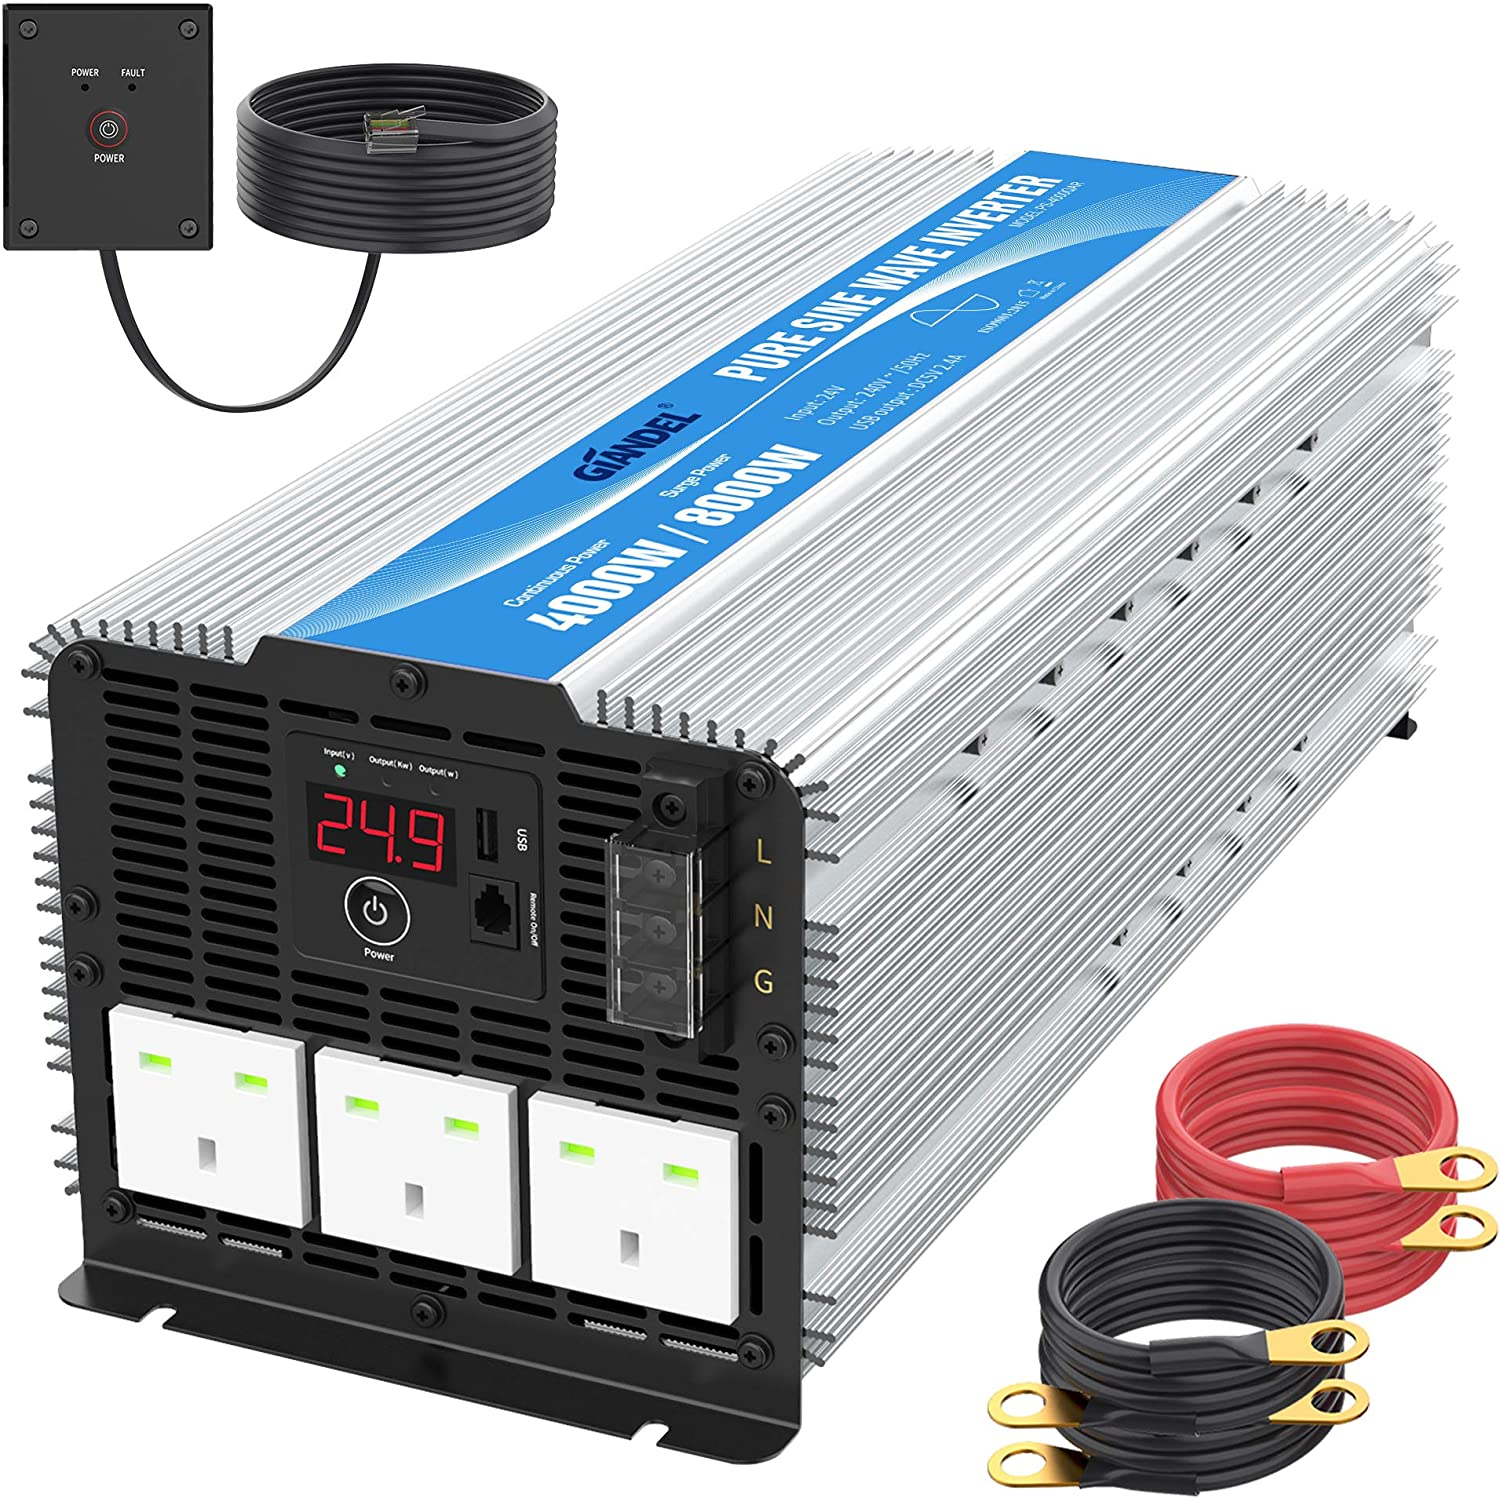 GIANDEL 4000W Heavy Duty Pure Sine Wave Power Inverter DC12V to AC240V with 3 AC Outlets with Remote Control 2.4A USB and LED Display